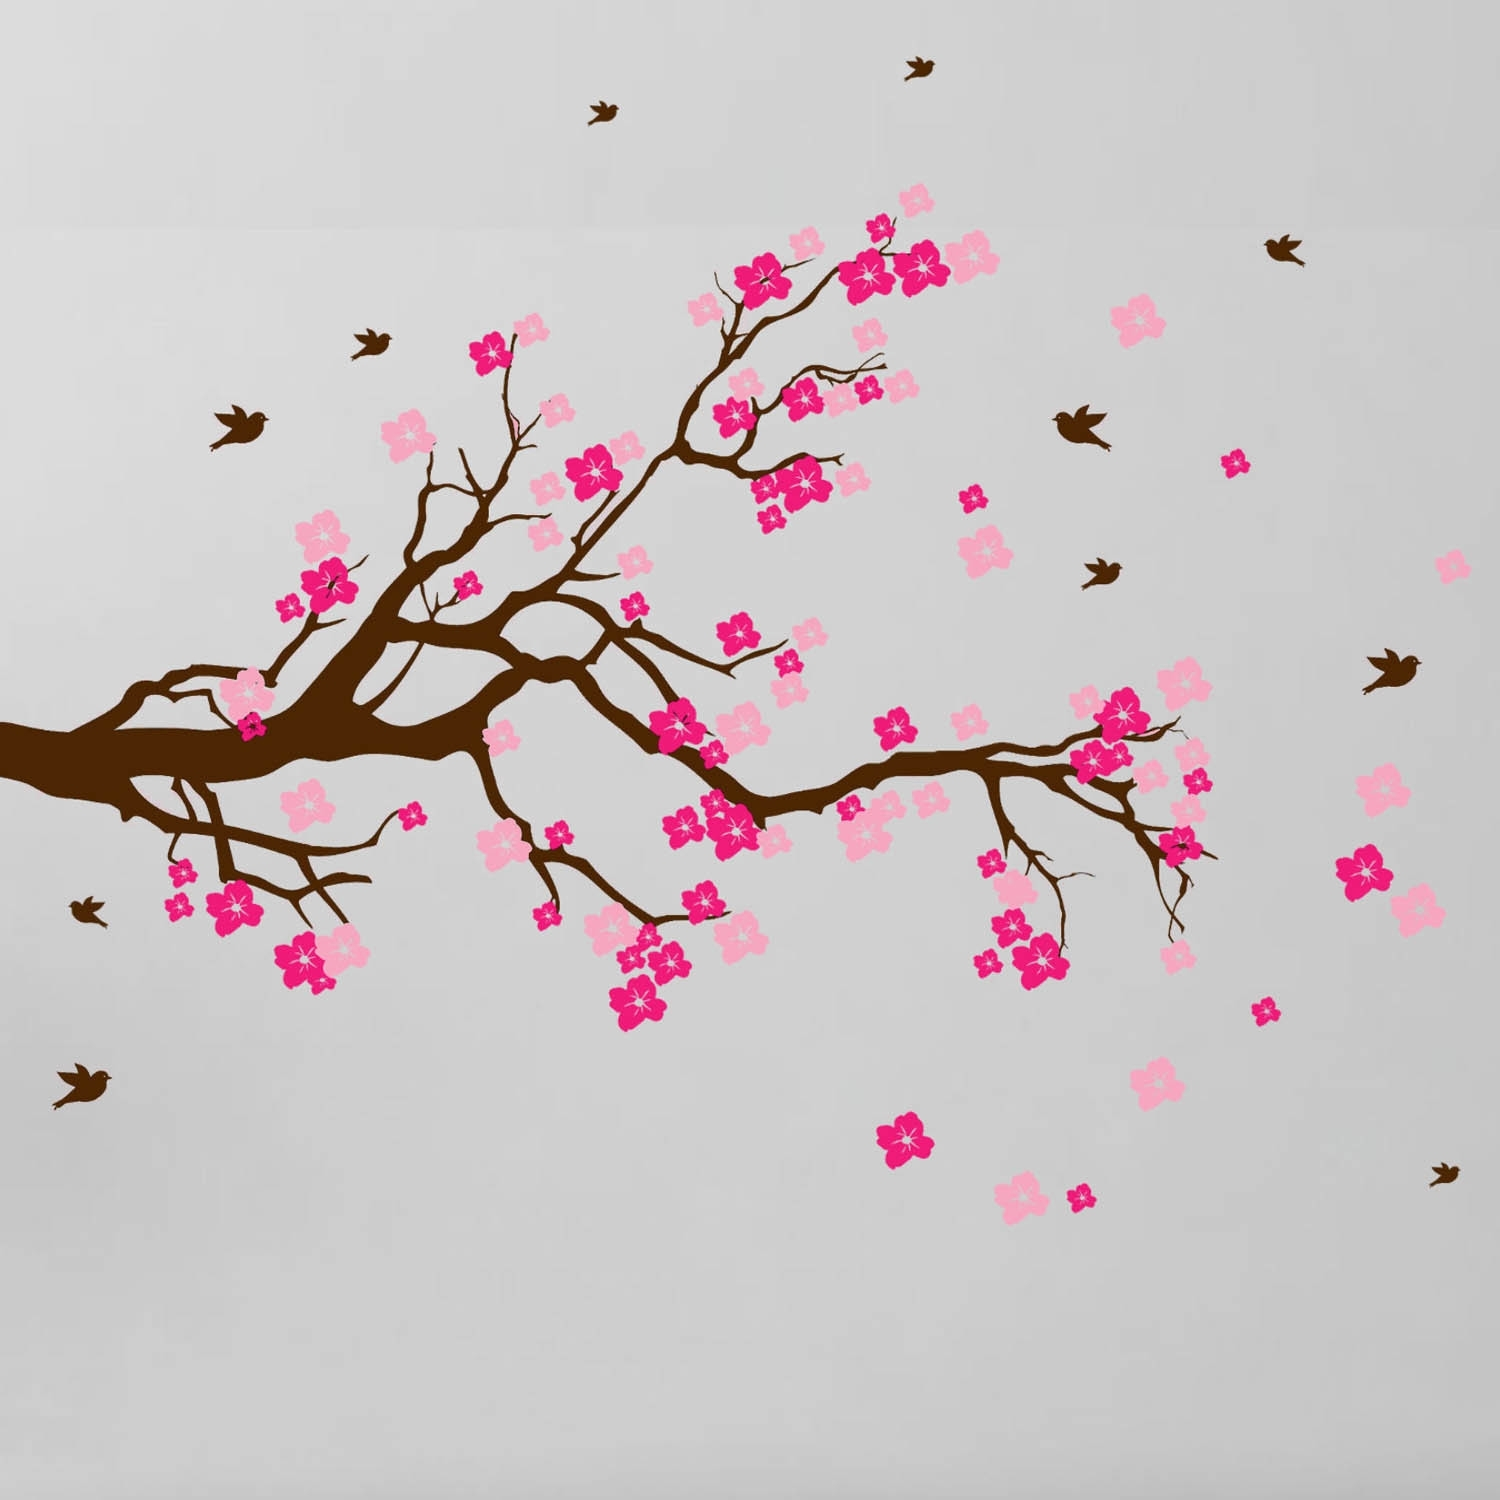 Shop Cherry Blossom Branch With Birds Vinyl Wall Art Decal – Free For Most Recent Cherry Blossom Wall Art (Gallery 4 of 20)